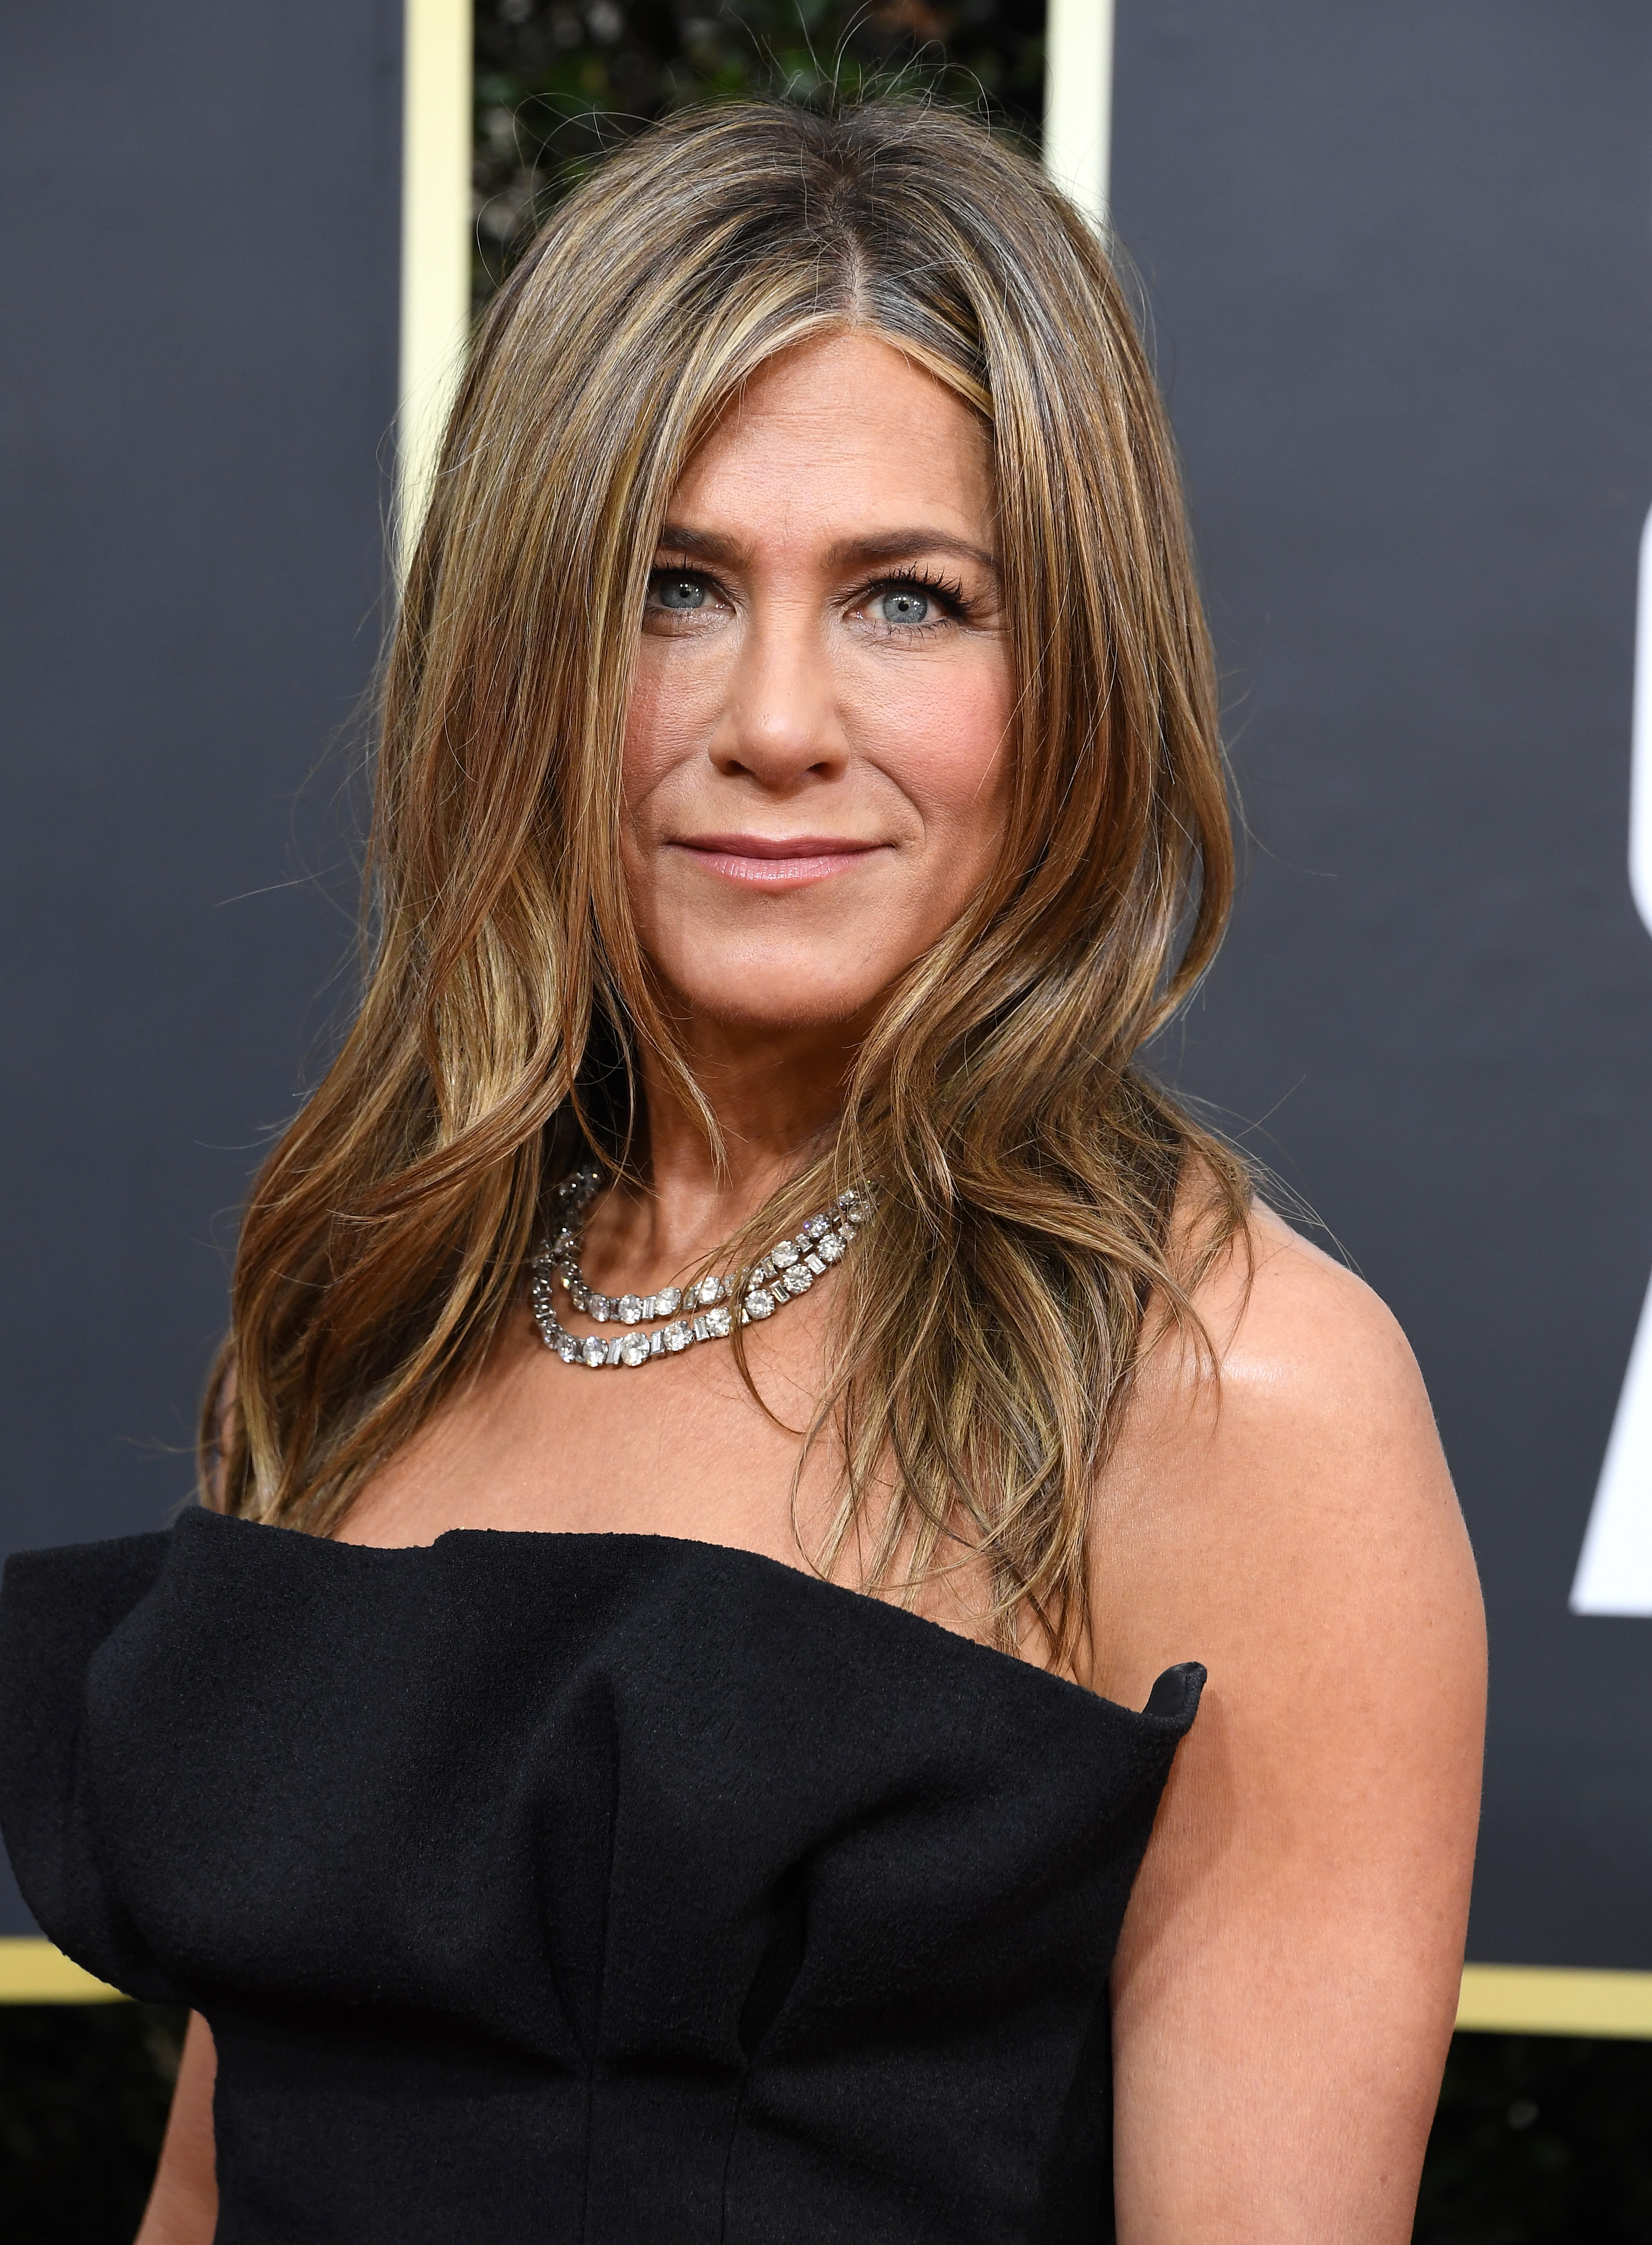 Jennifer Aniston arrives at the 77th Annual Golden Globe Awards at The Beverly Hilton Hotel on January 5, 2020.